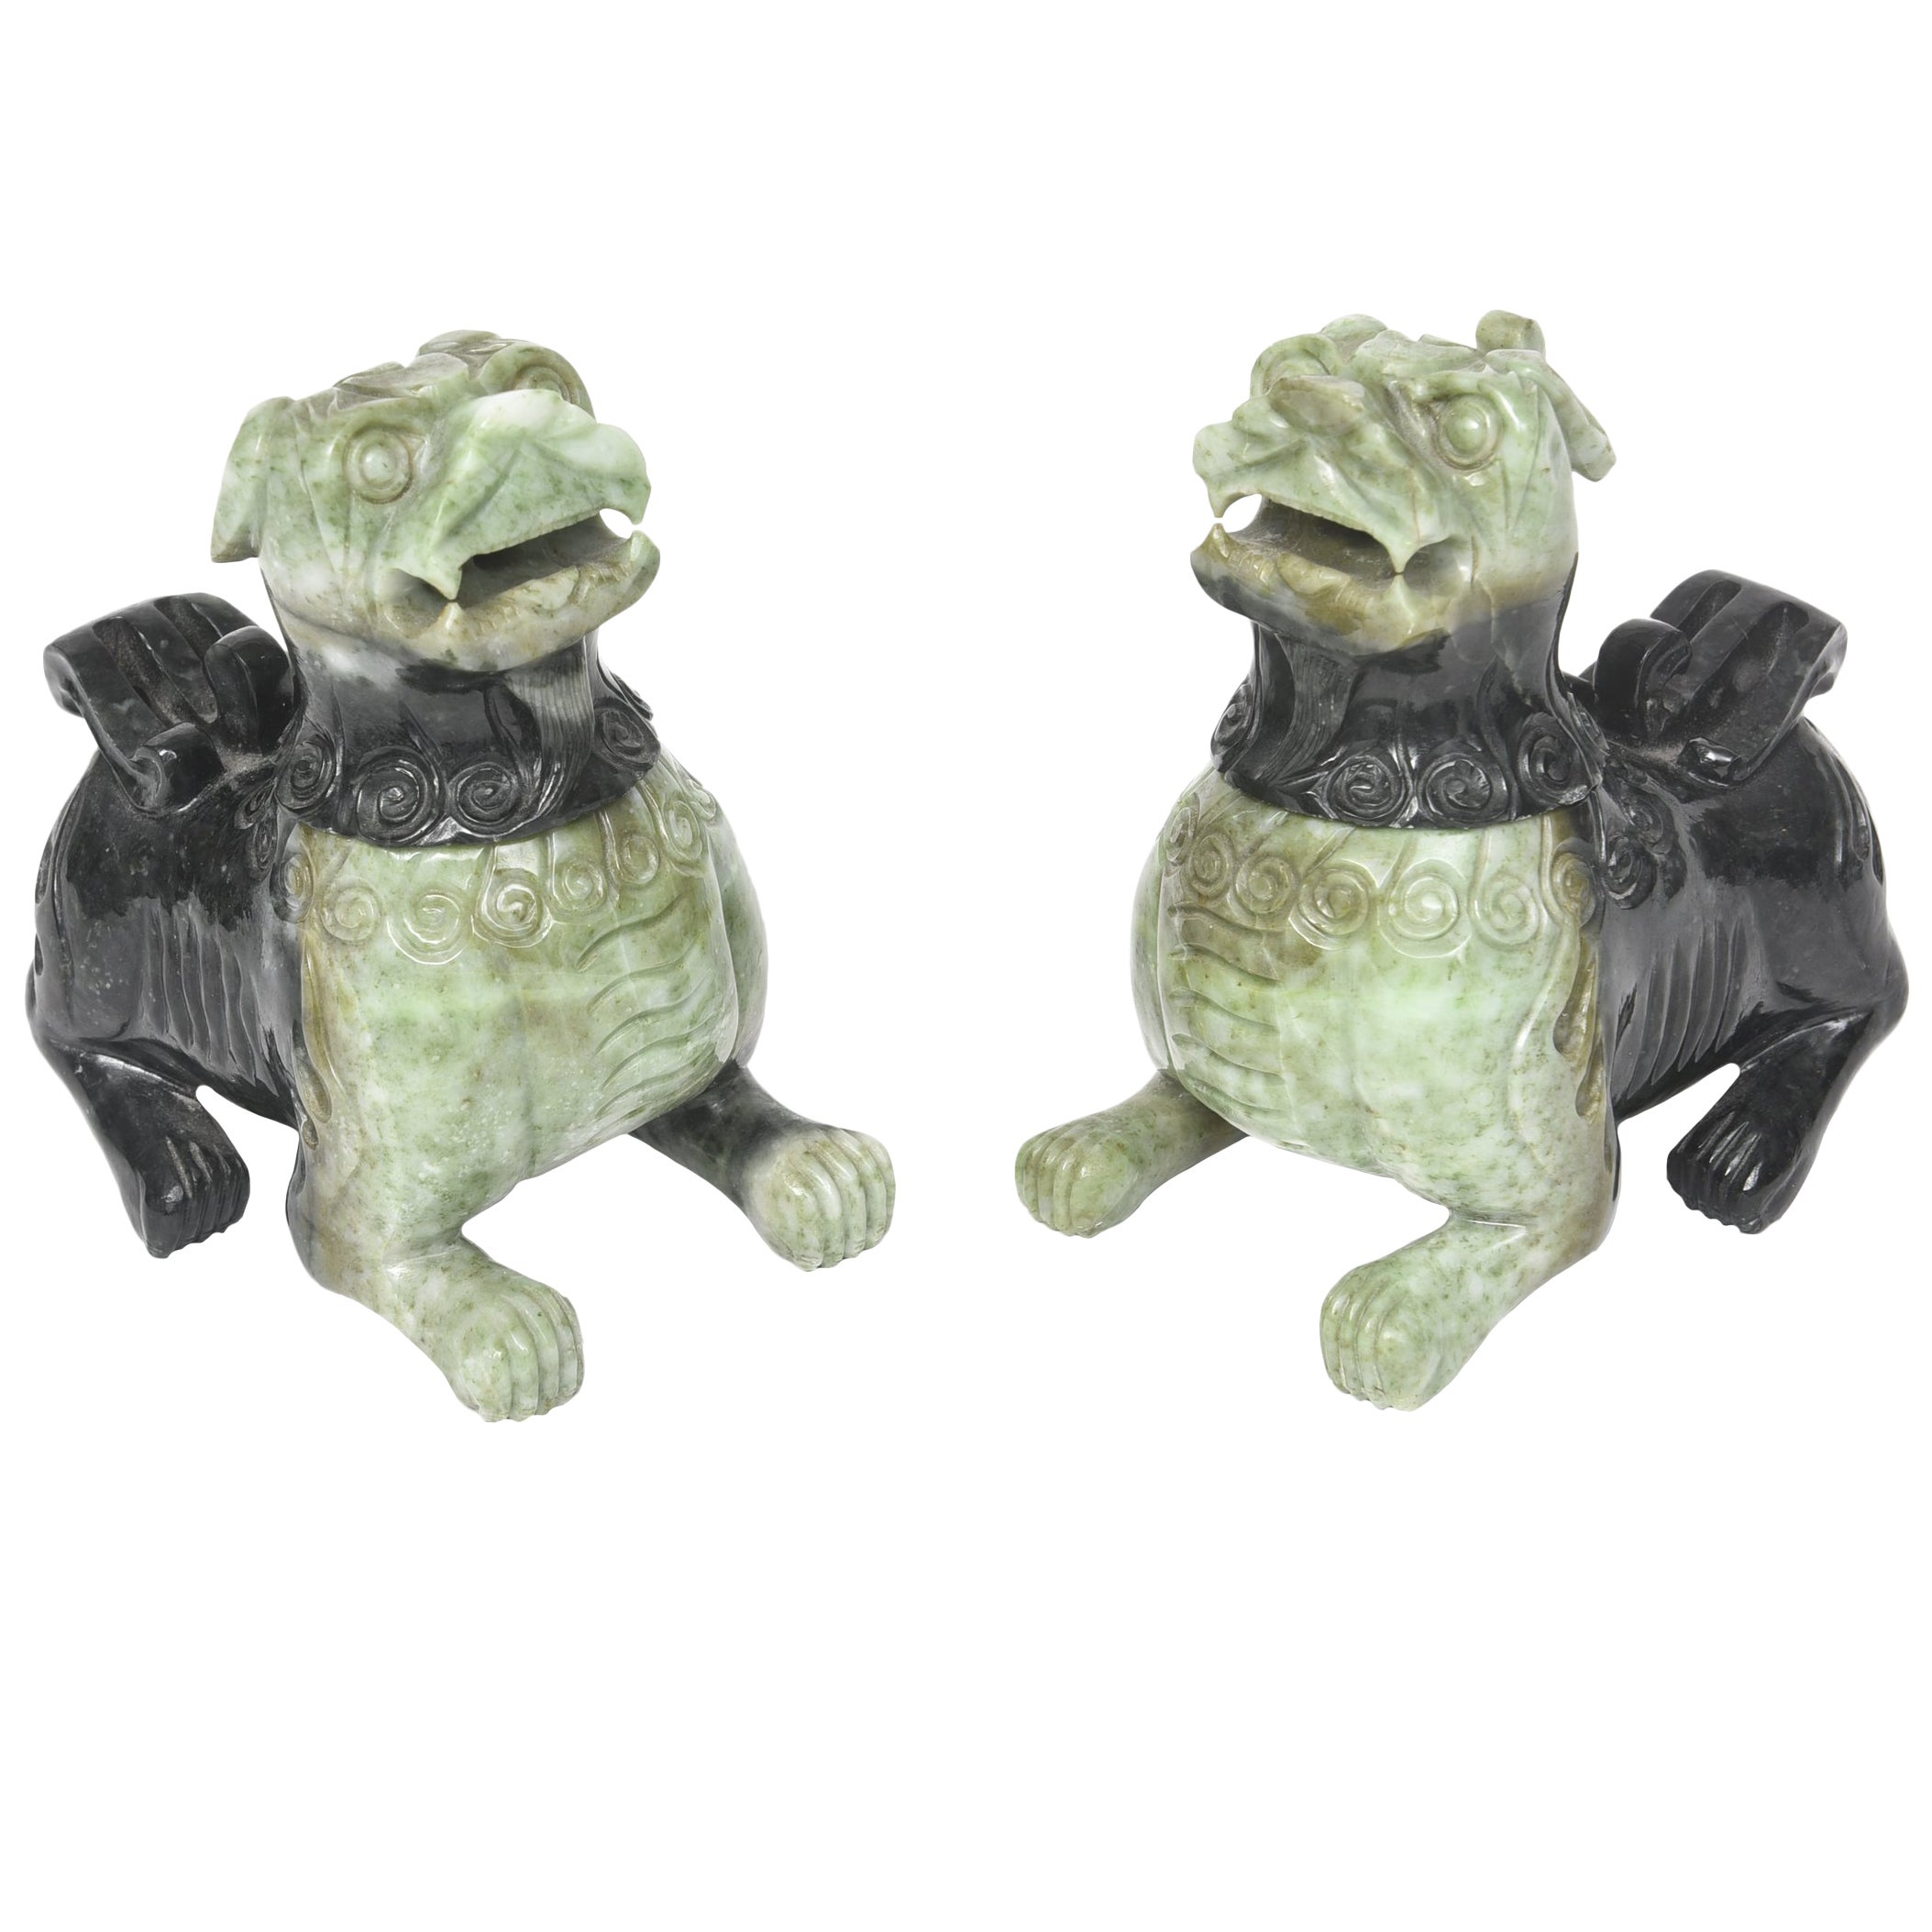 Mid-20th Century Pair of Chinese Carved Green Hardstone Foo Dogs / Lions